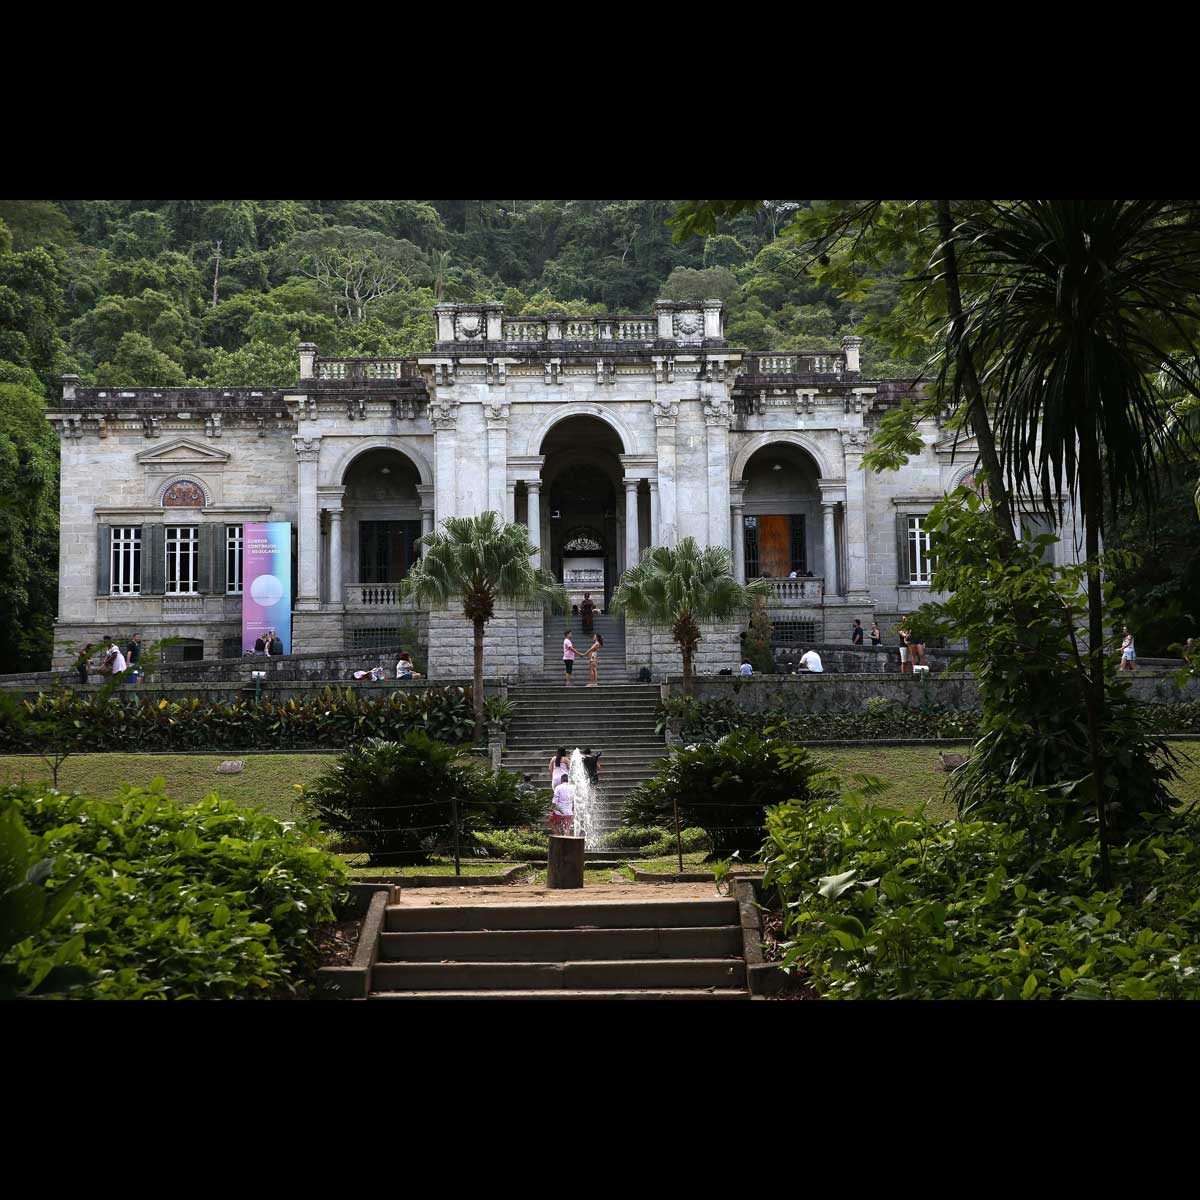 View of the Lage Park Mansion in Rio de Janeiro, Brazil